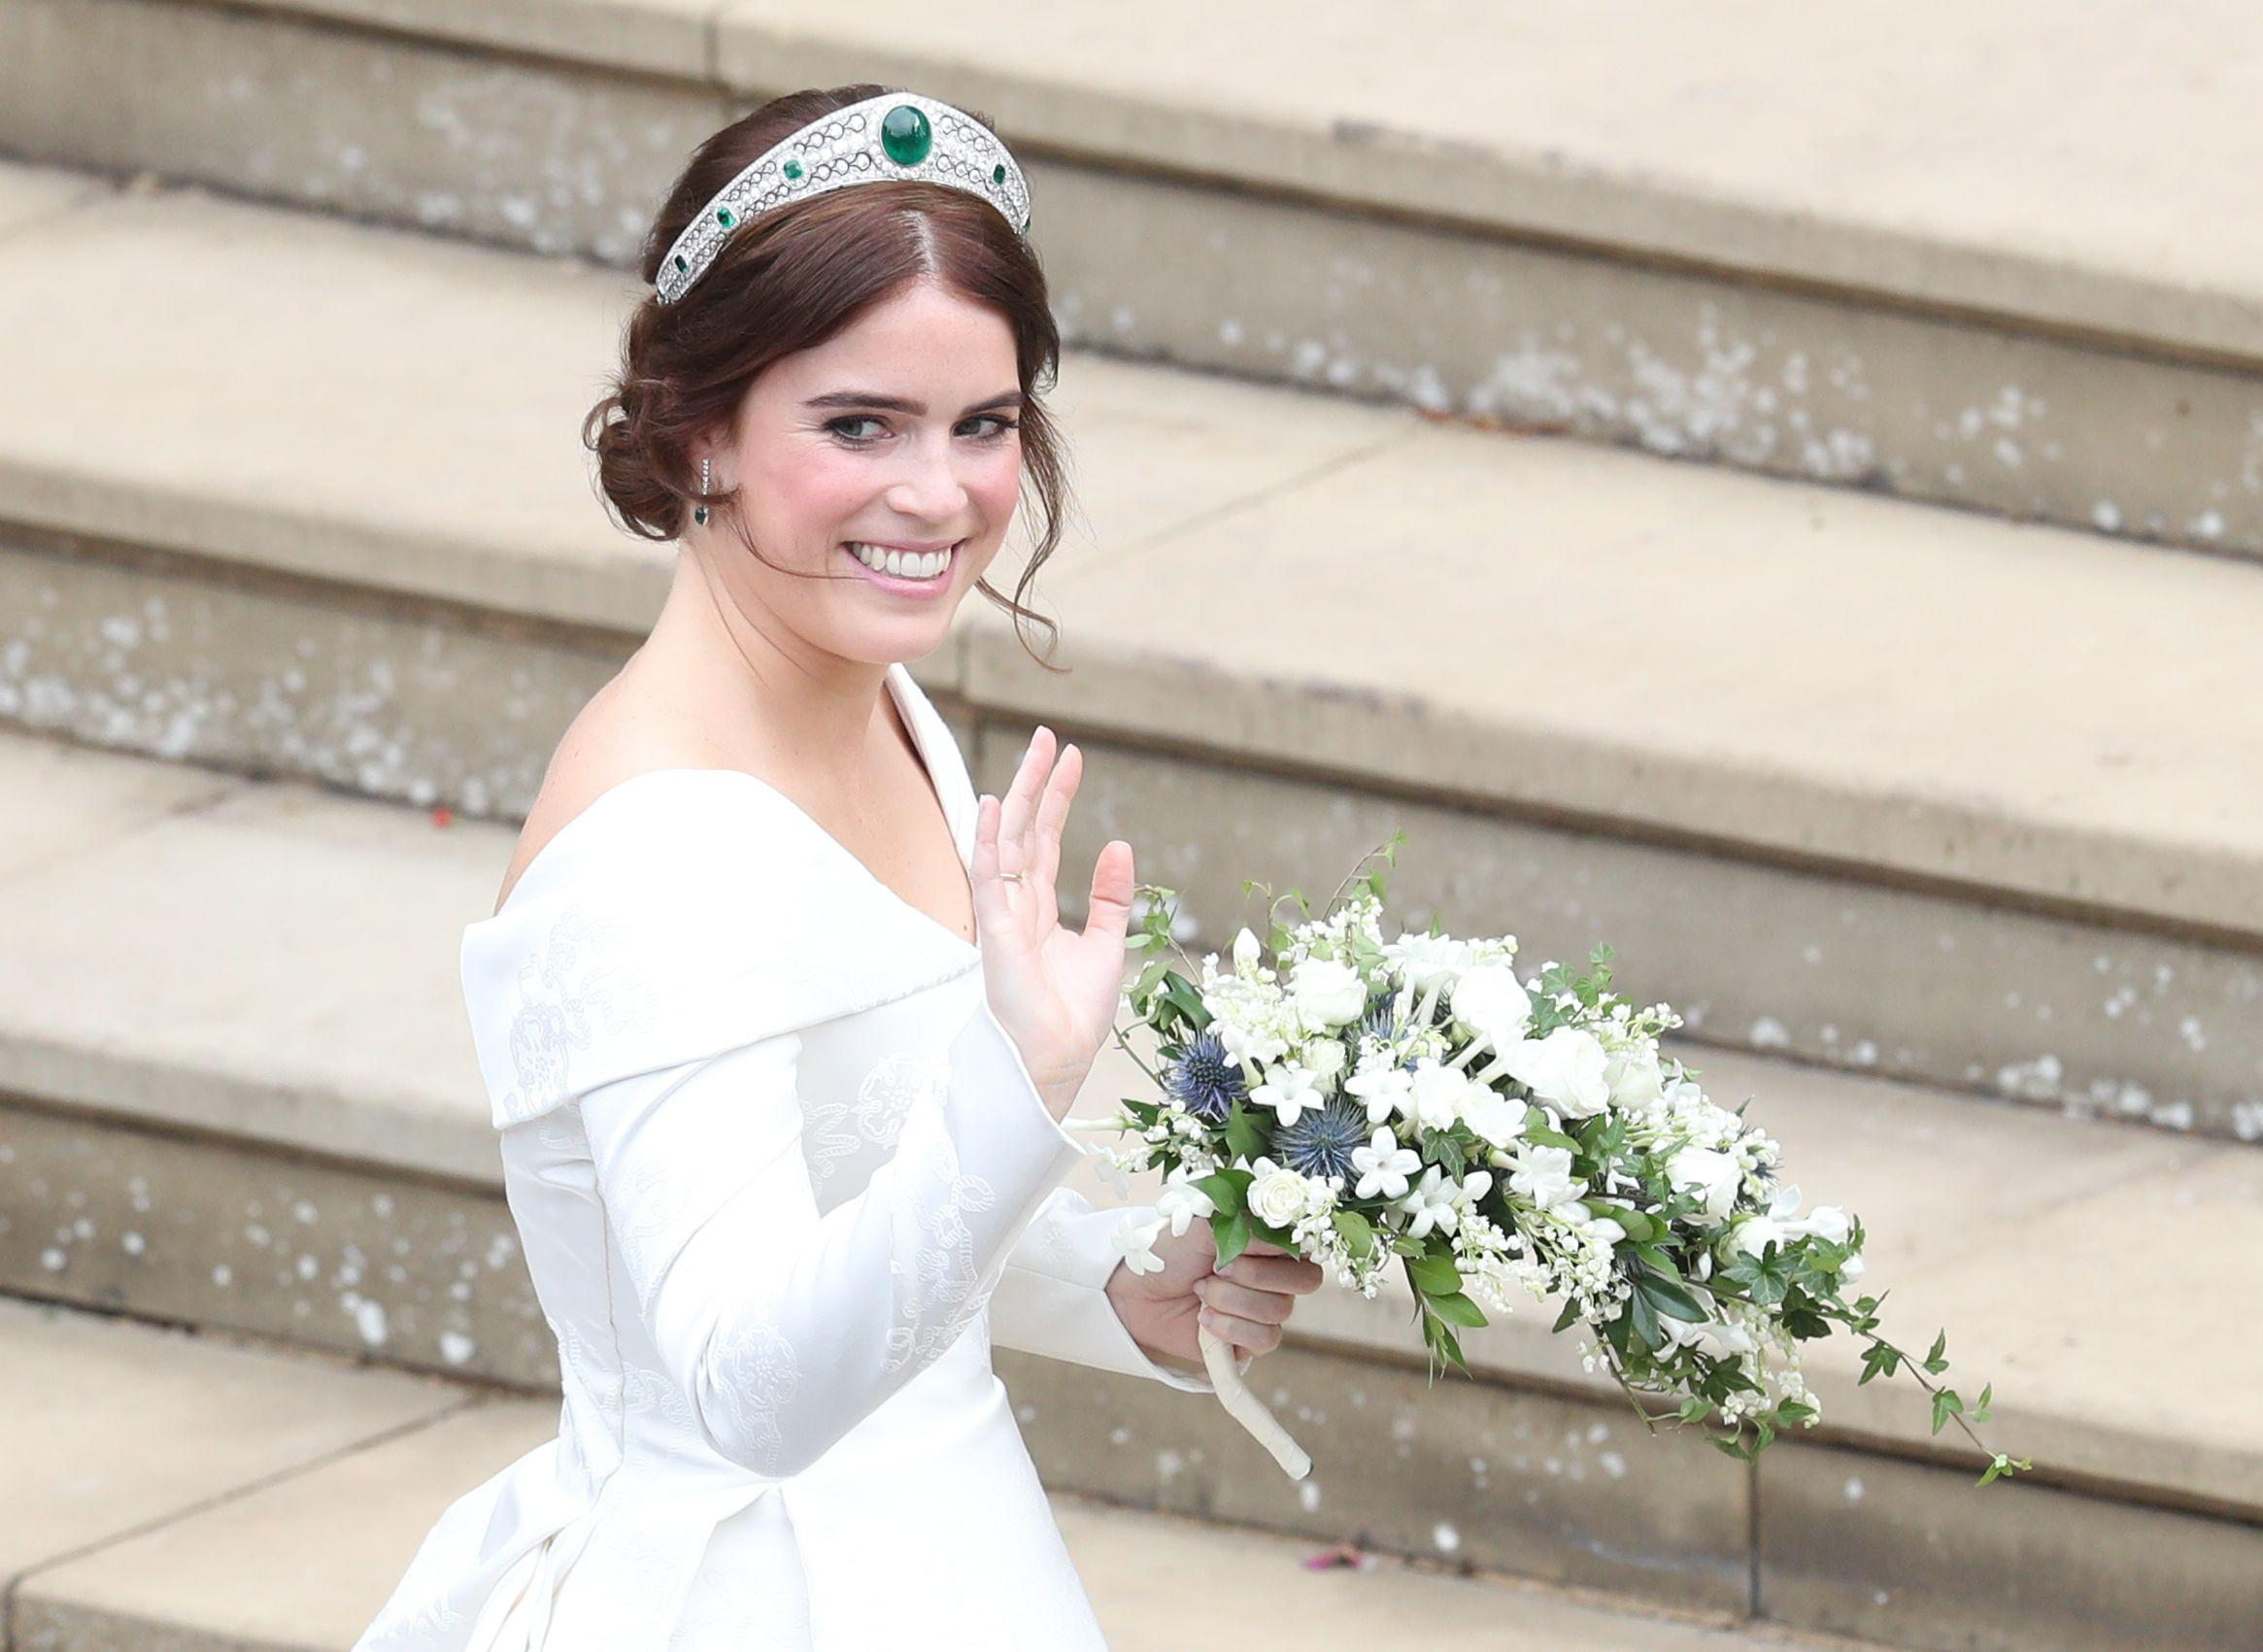 Will Princess Eugenie Have to Move out of Kensington Palace